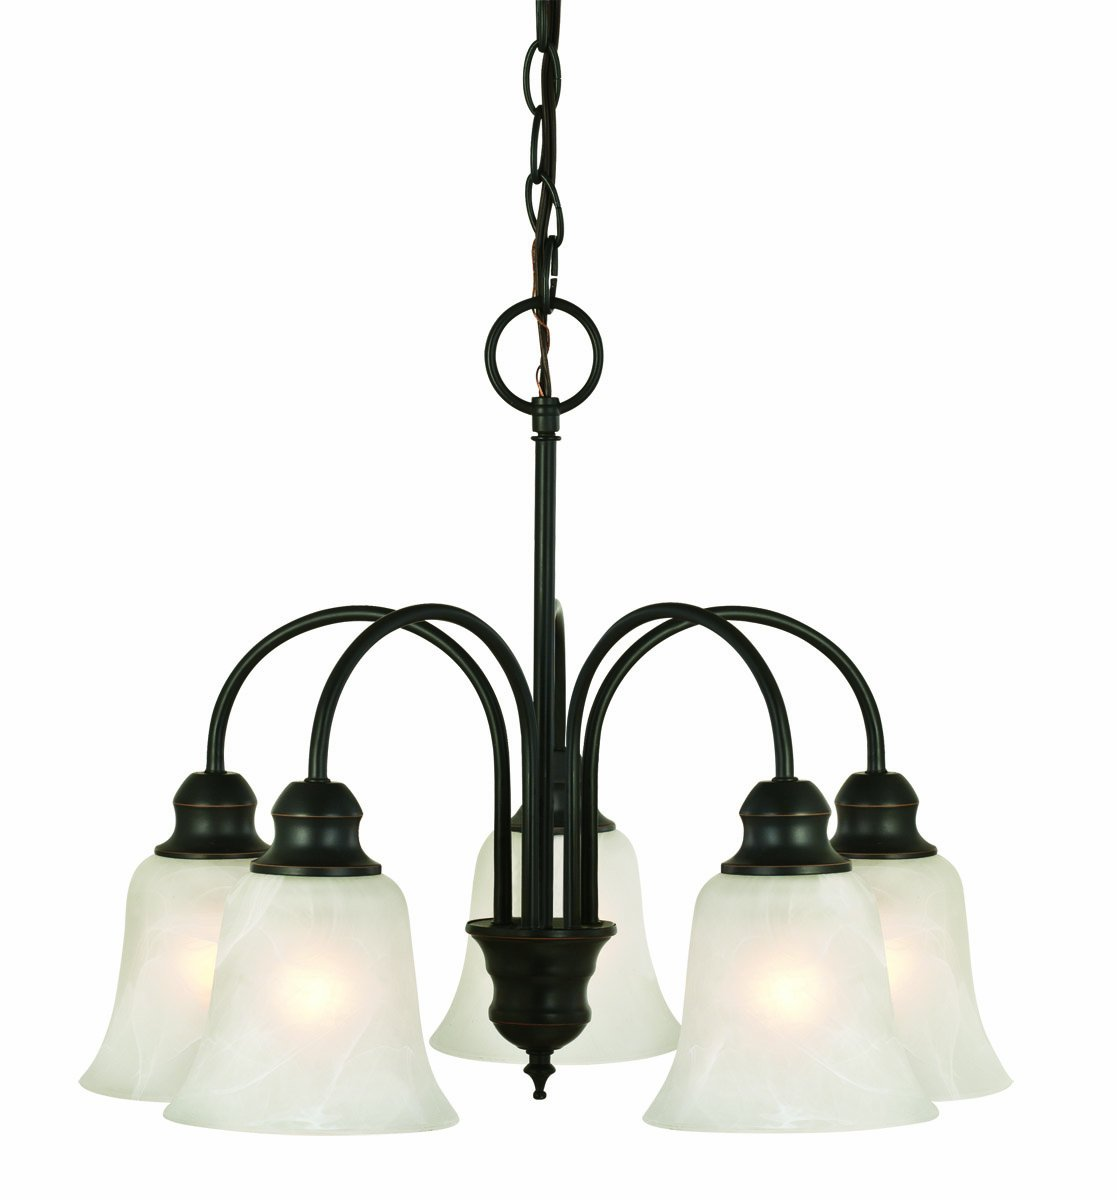 Design House 519322 Ridgeway 5 Light Chandelier, Oil Rubbed Bronze